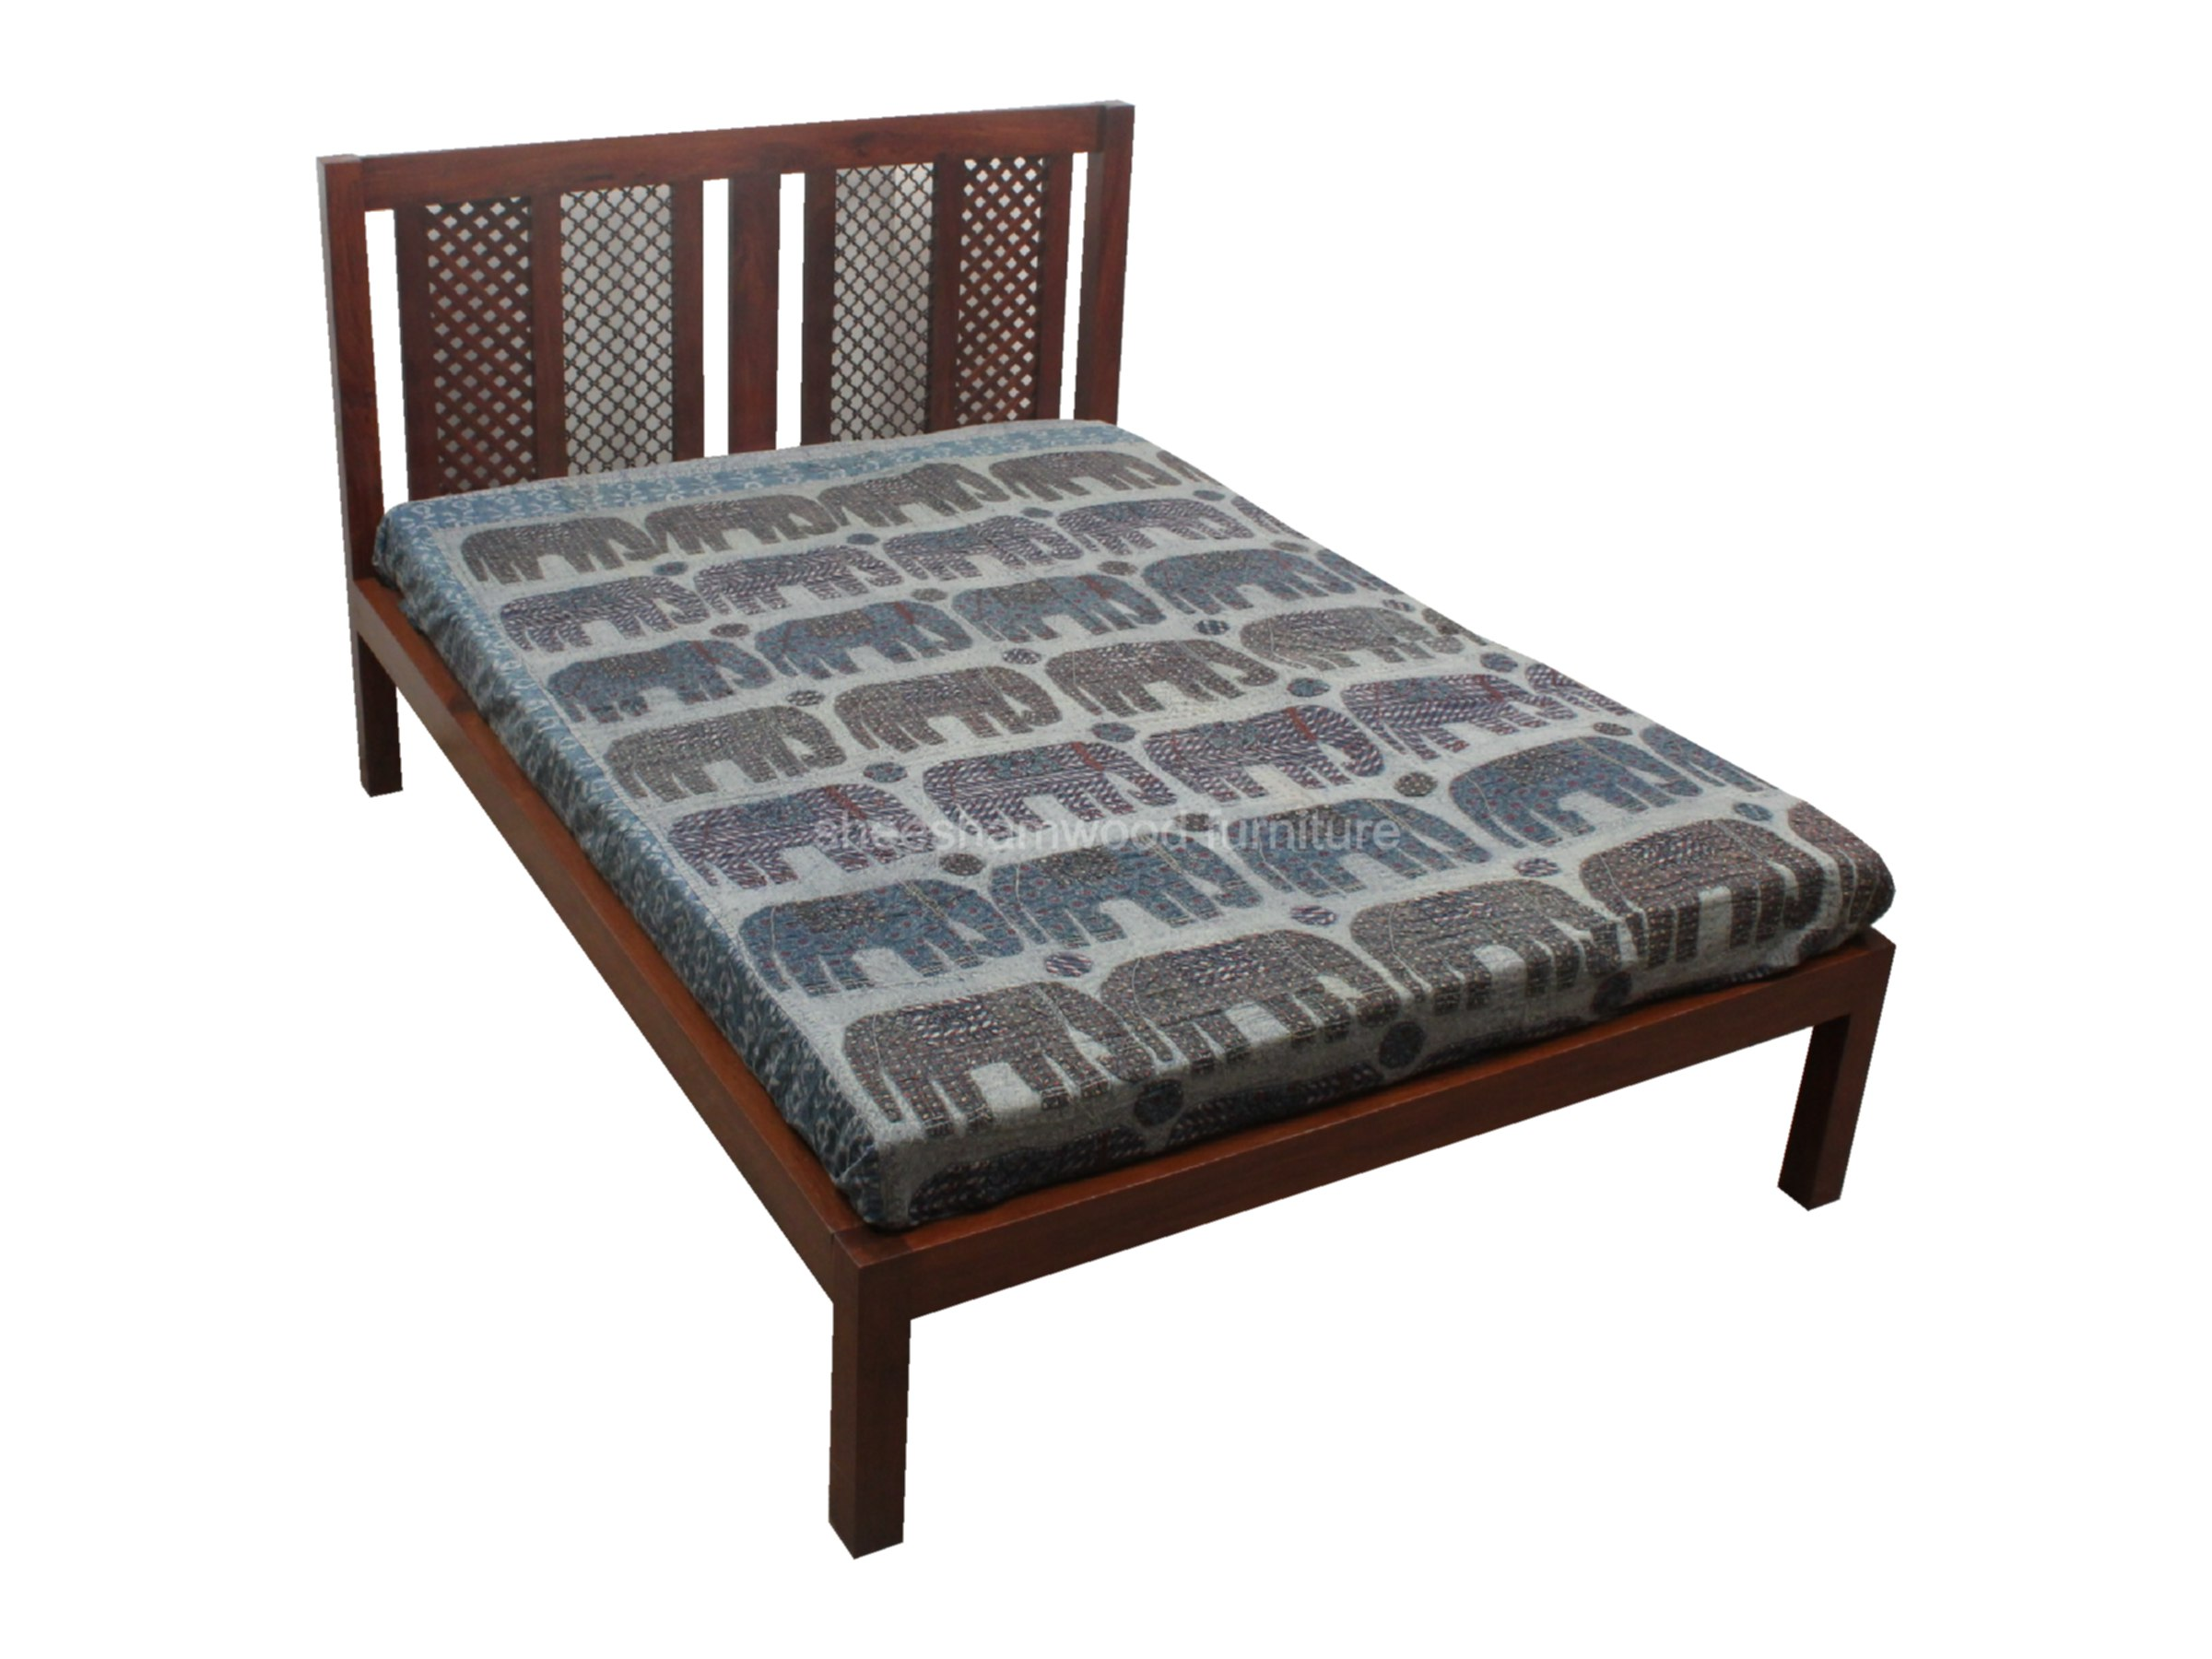 Indian modern double beds - Indian_beds_mumbai